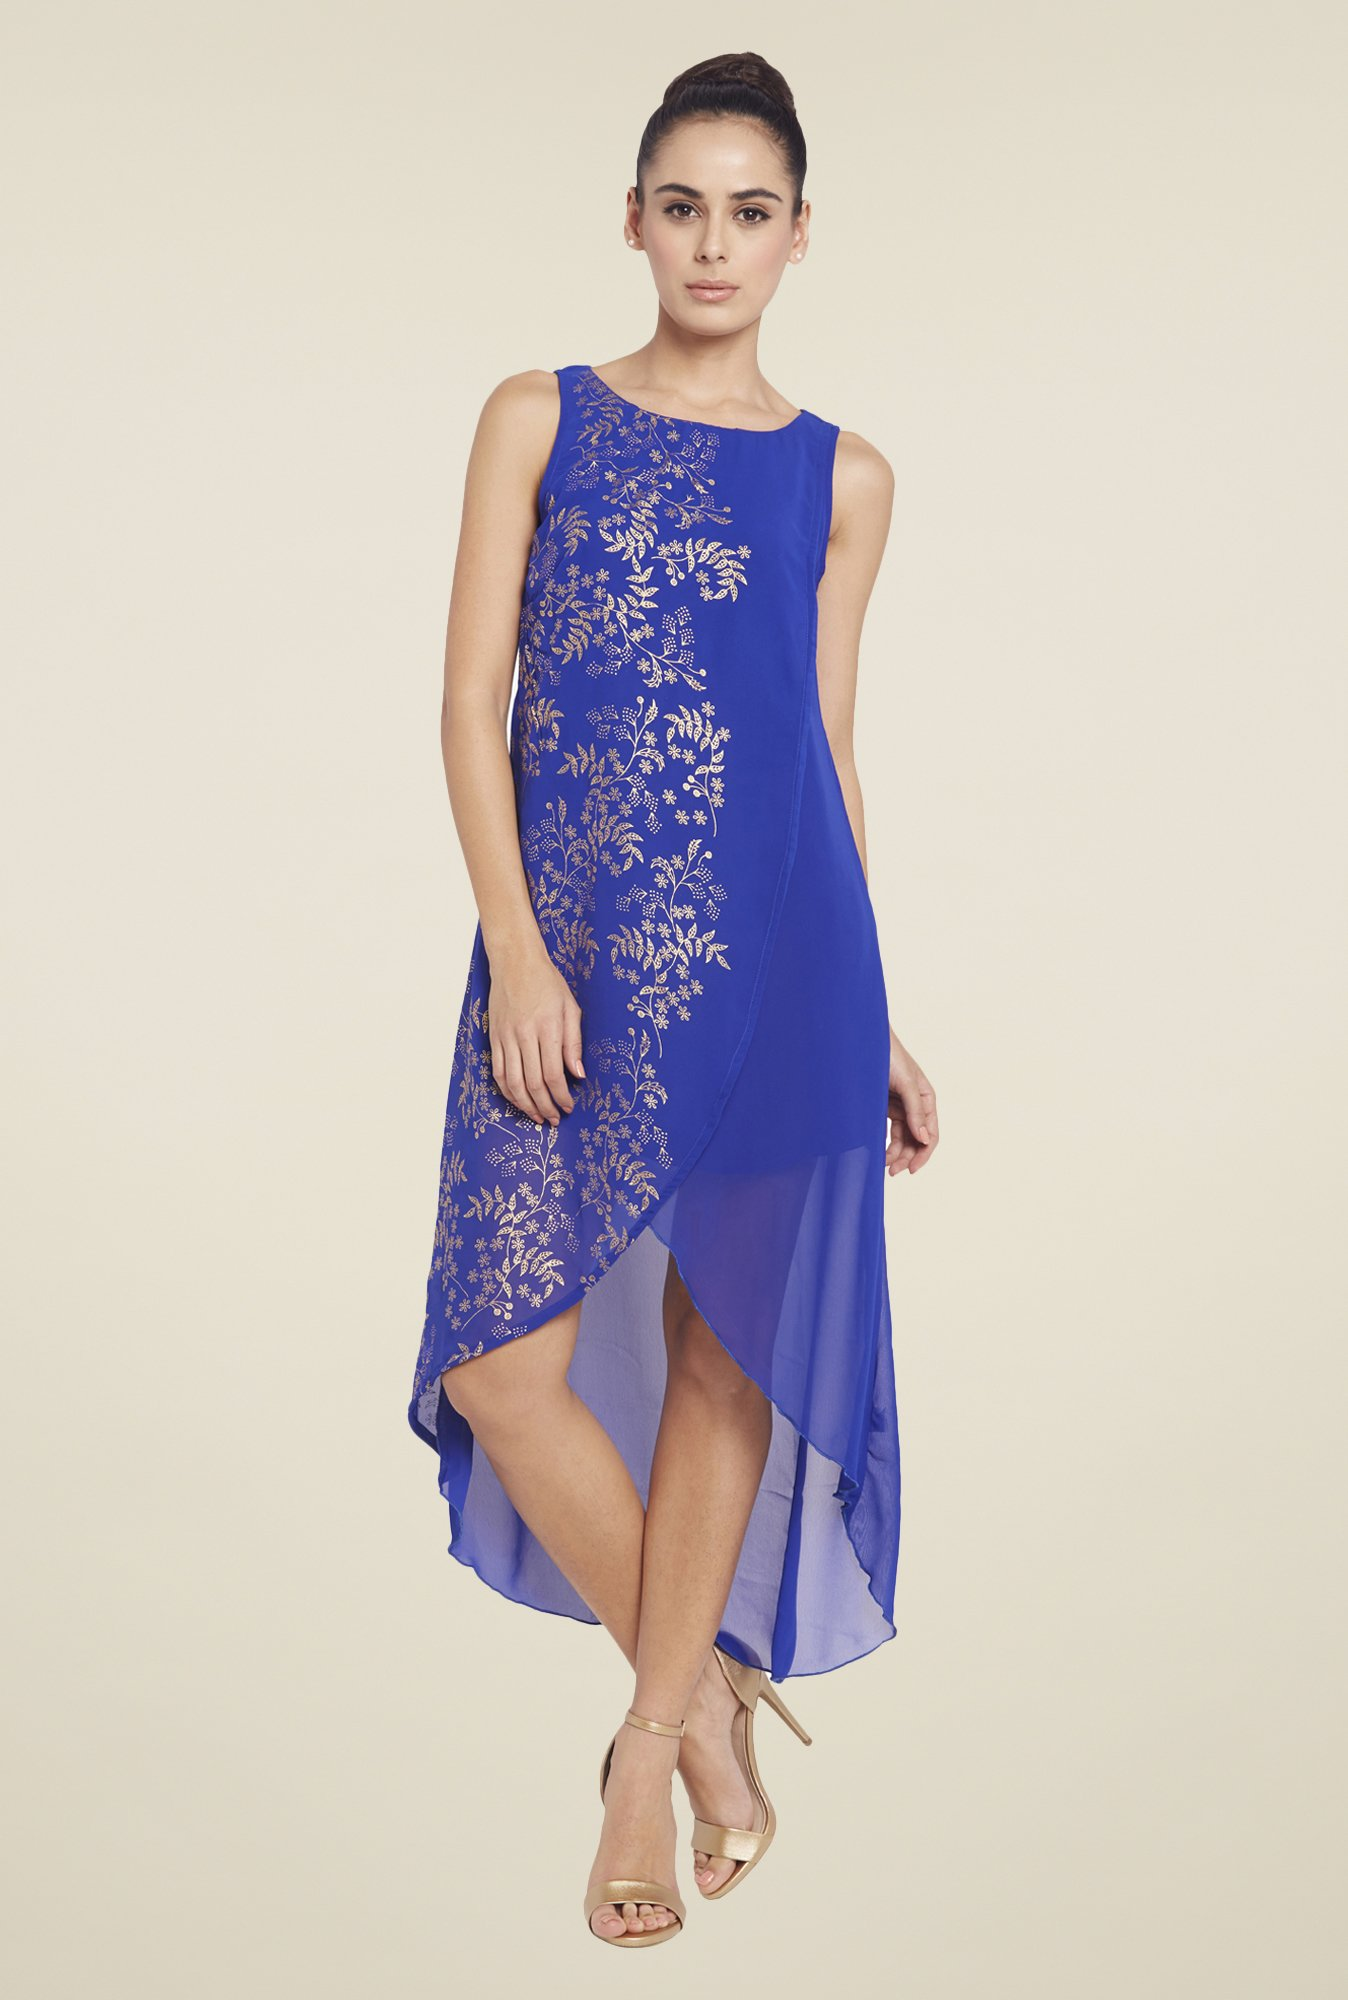 Globus Blue High Low Dress